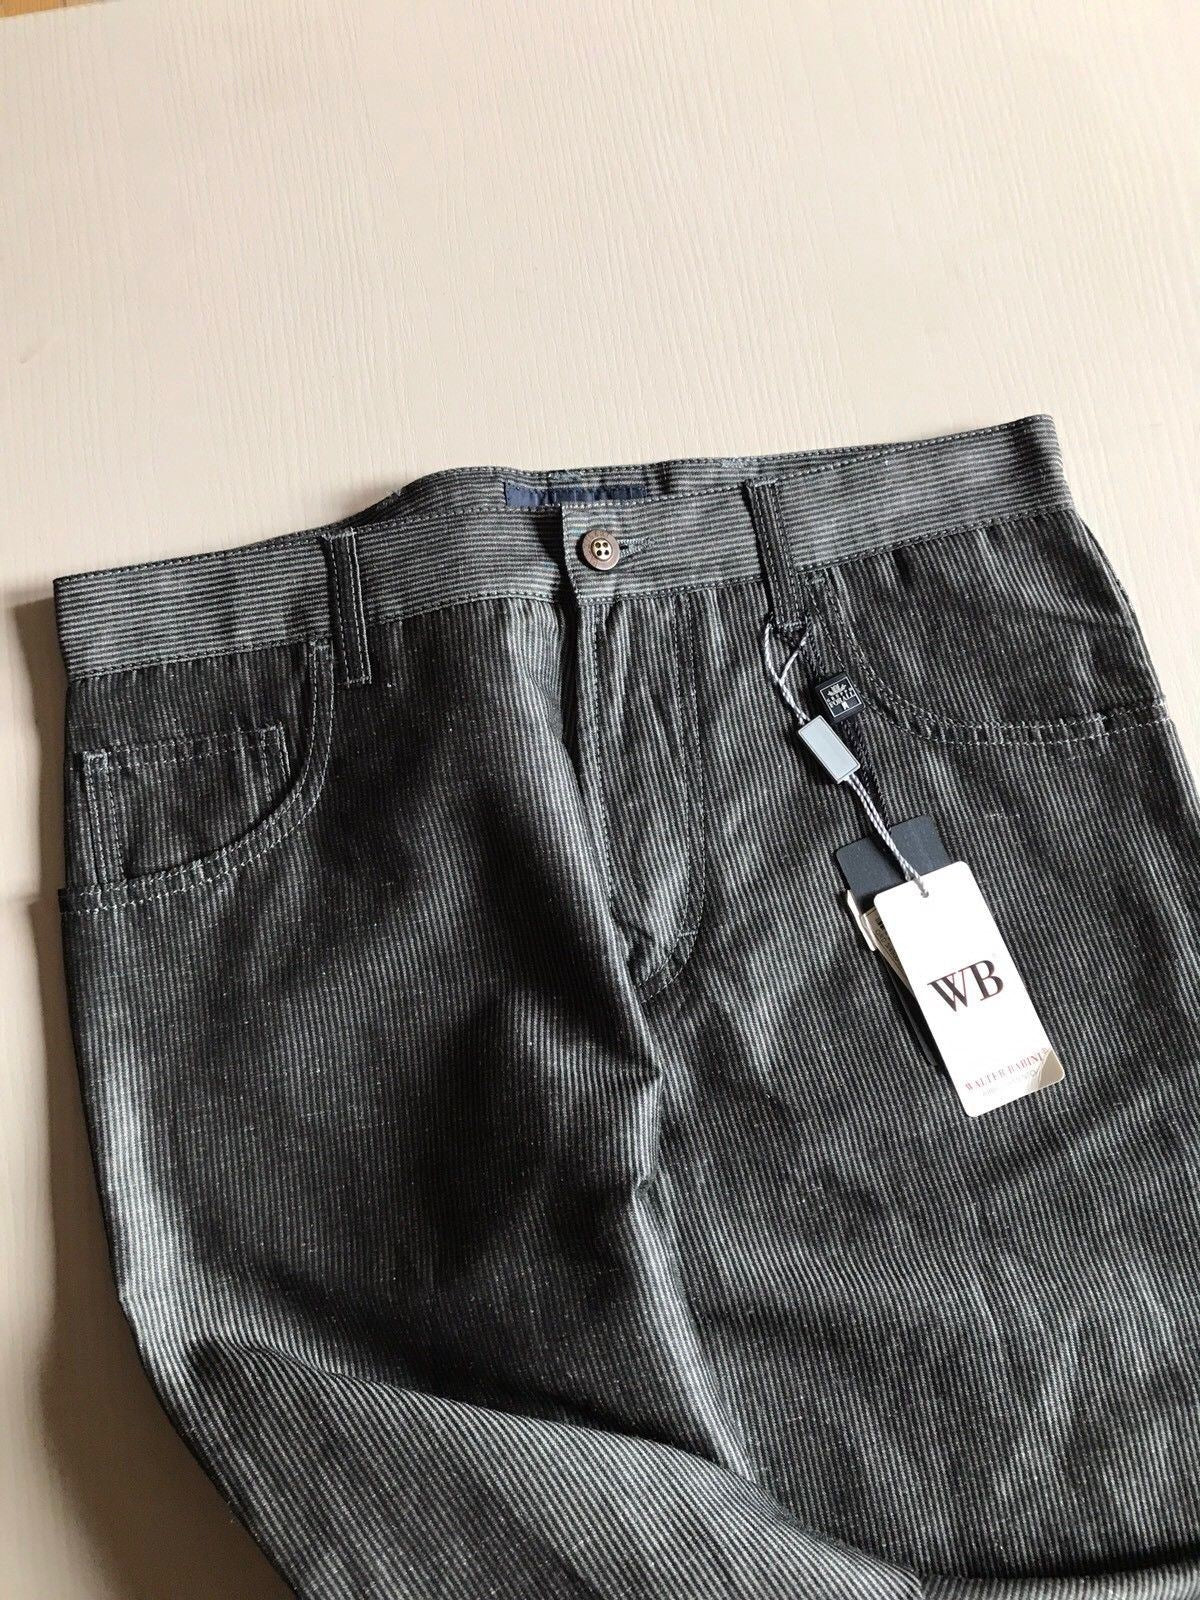 NWT $570 Pal Zileri Mens Pants Jeans DK Gray 30 US ( 48 Eur ) Italy - BAYSUPERSTORE